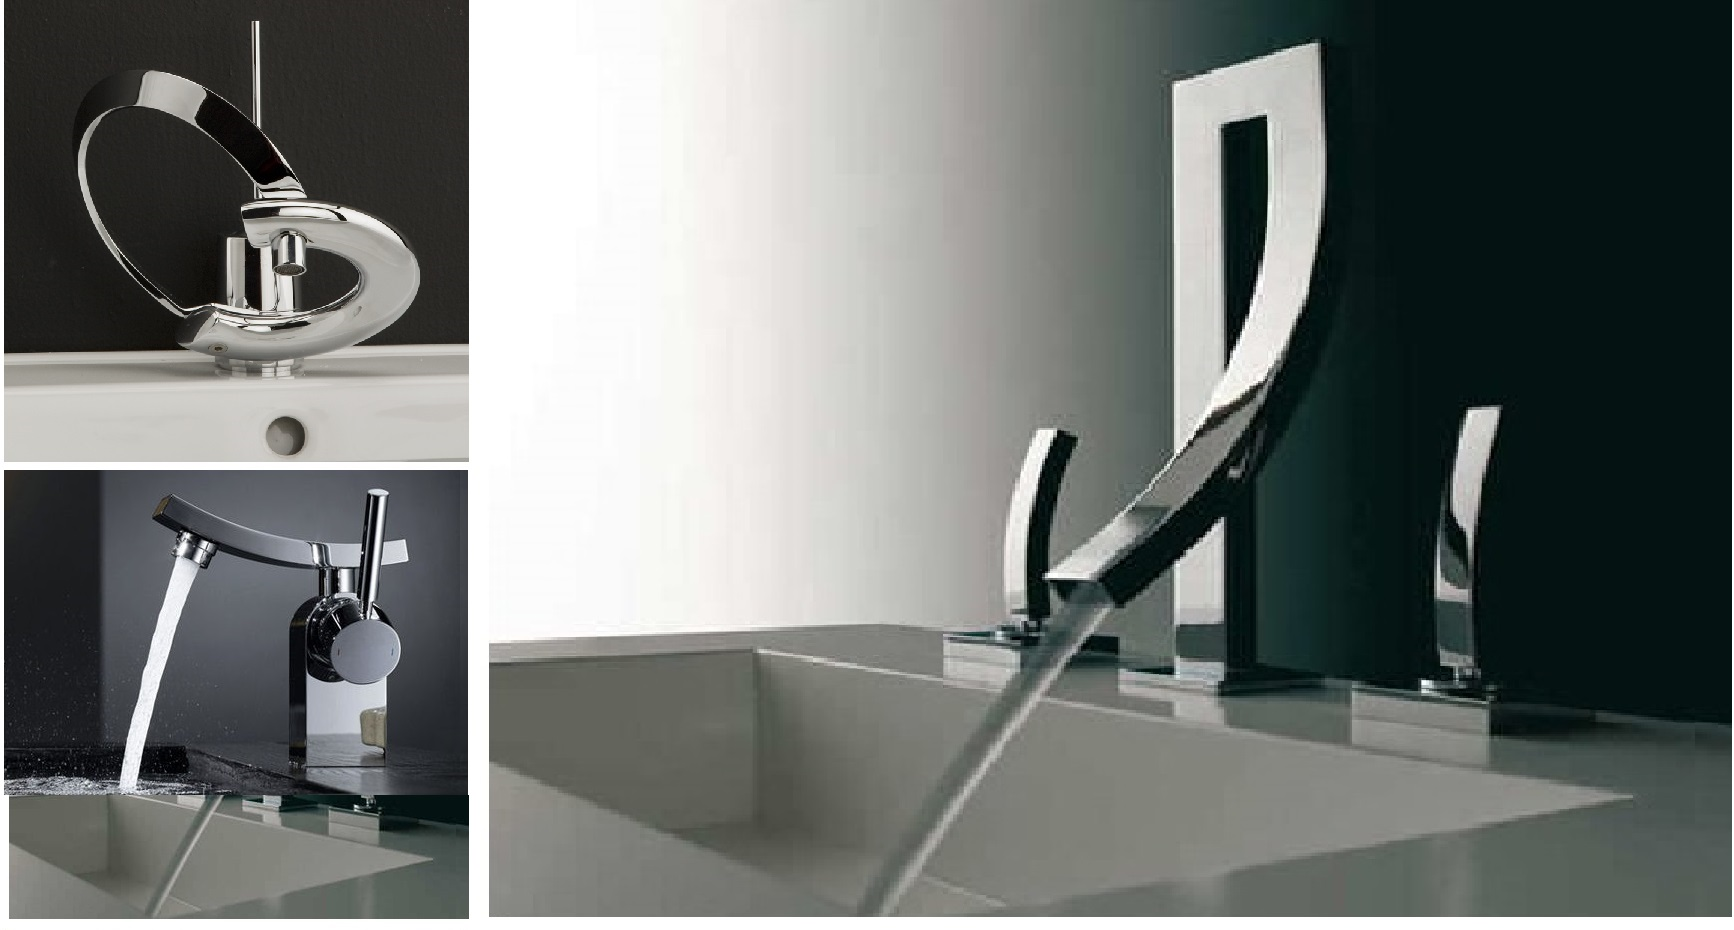 contemporary-bathroom-faucet-sink-faucets.jpg